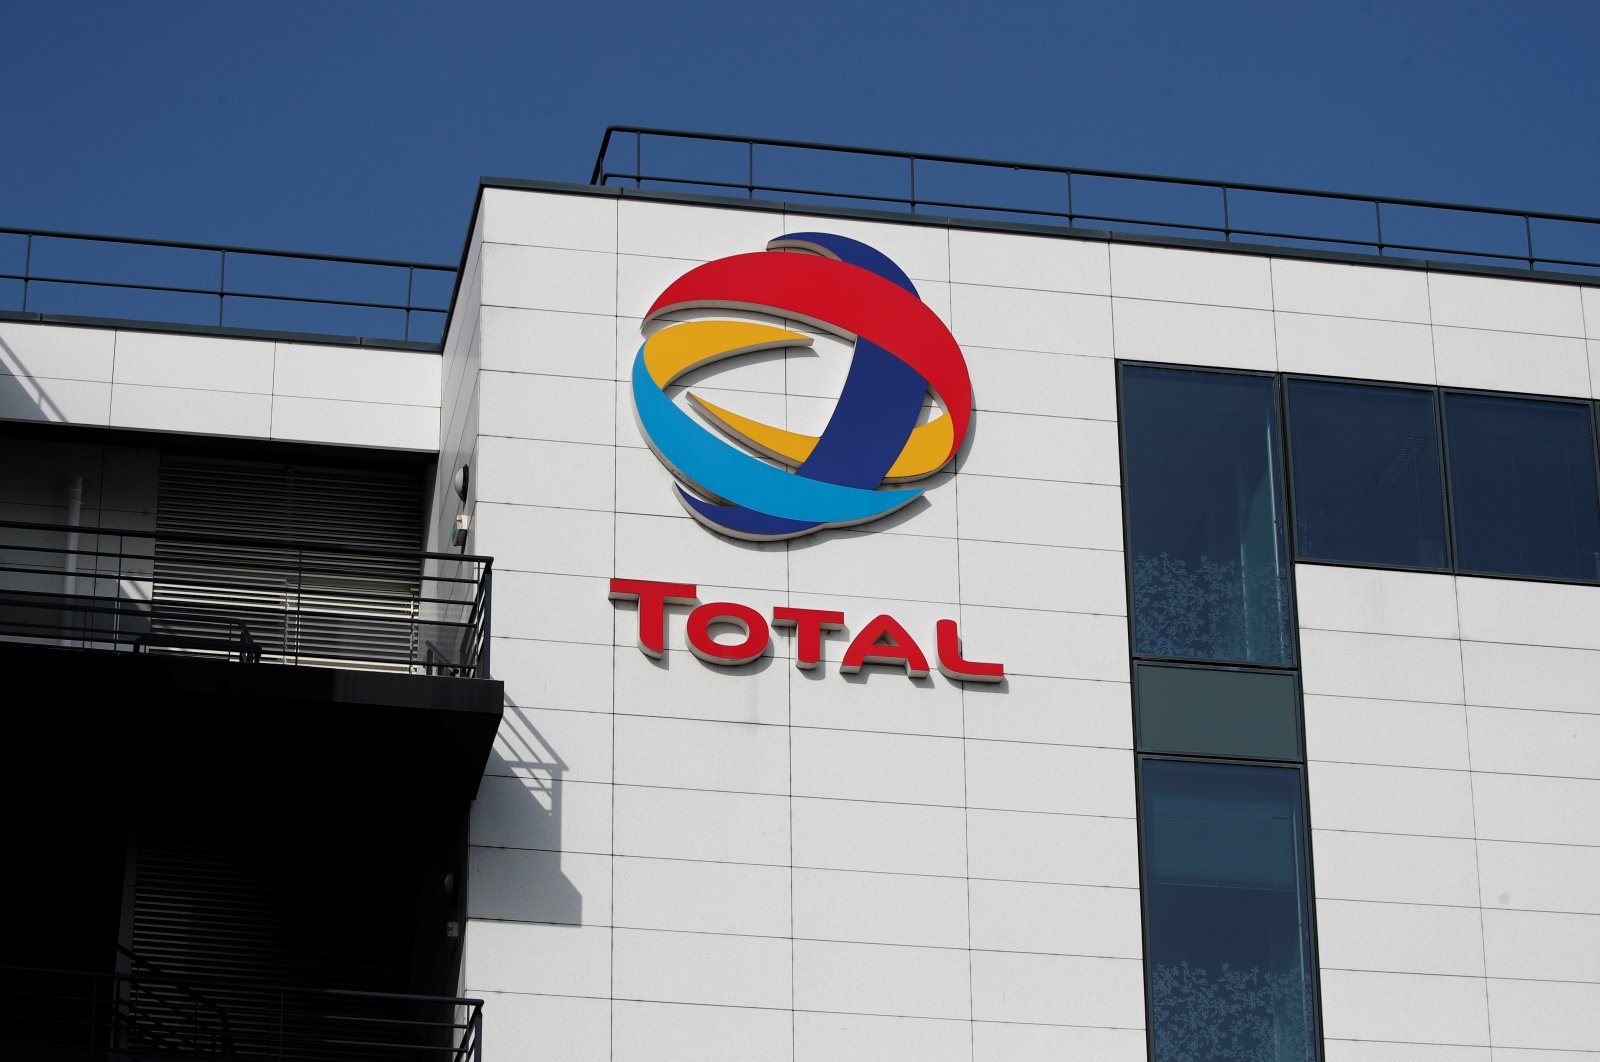 The logo of French oil and gas company Total is seen in Rueil-Malmaison, near Paris, France, March 2, 2021. (Reuters Photo)